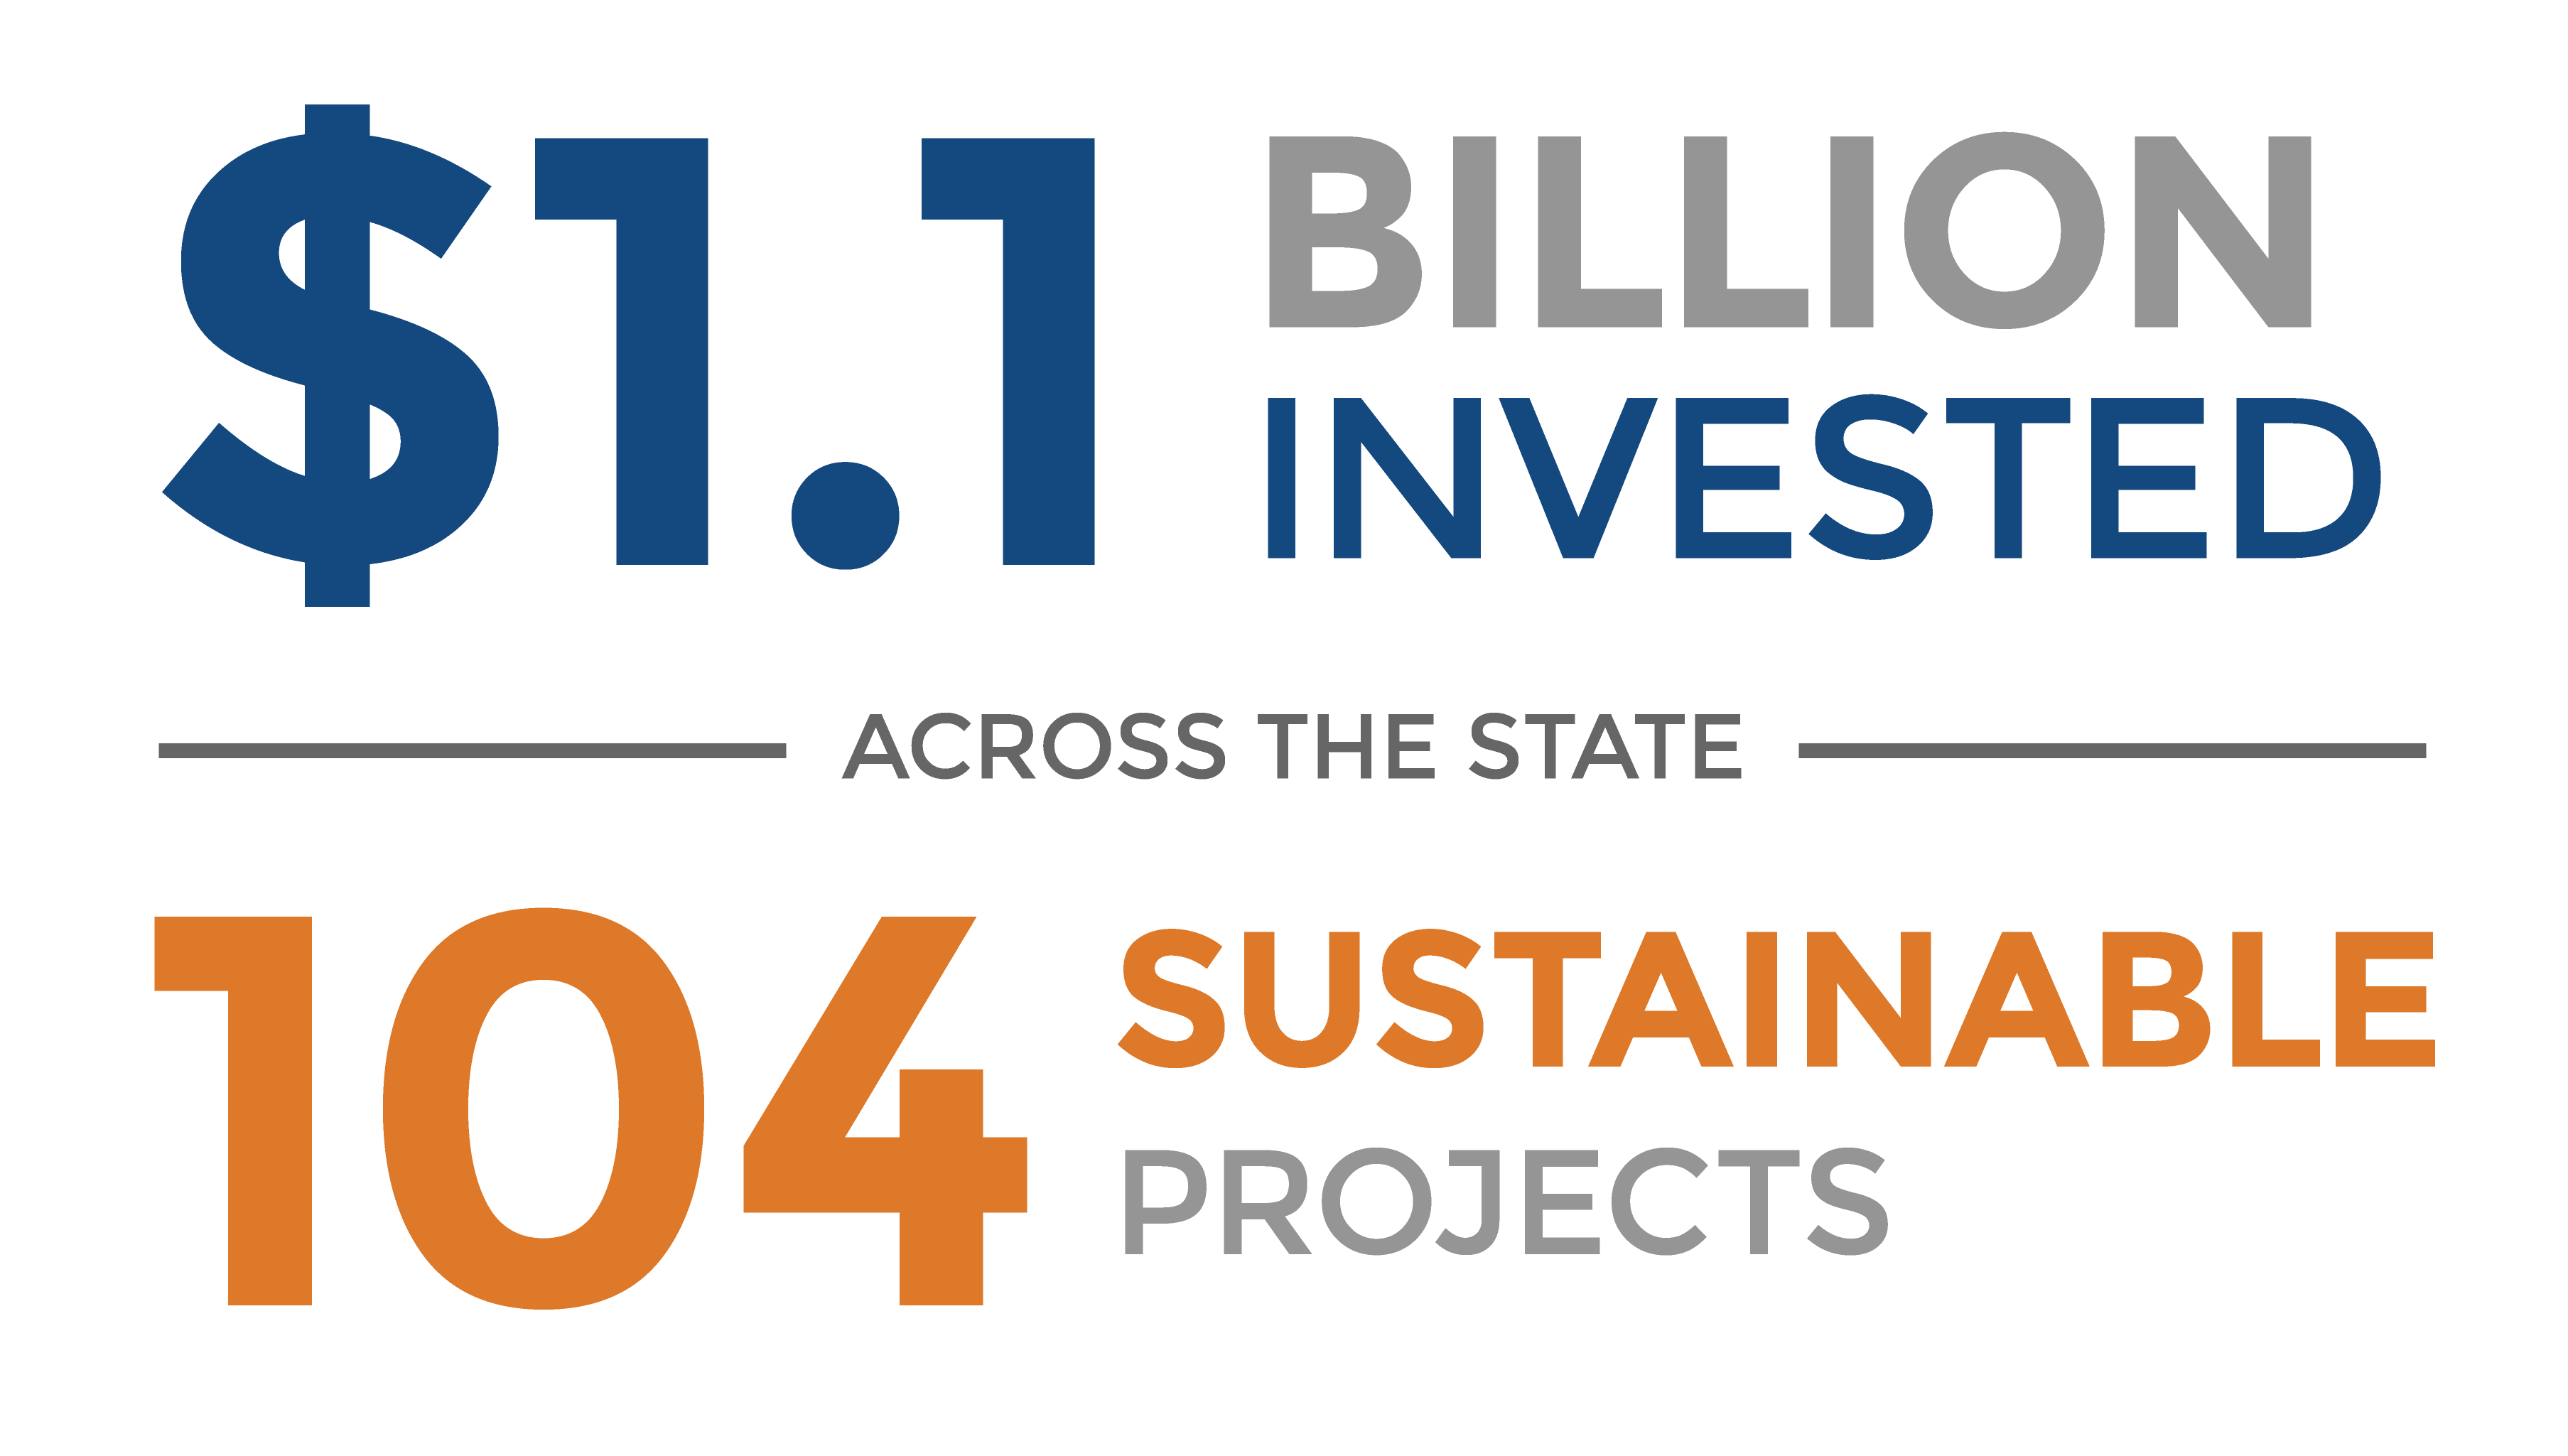 $440 Million invested across the state. 60 sustainable projects.